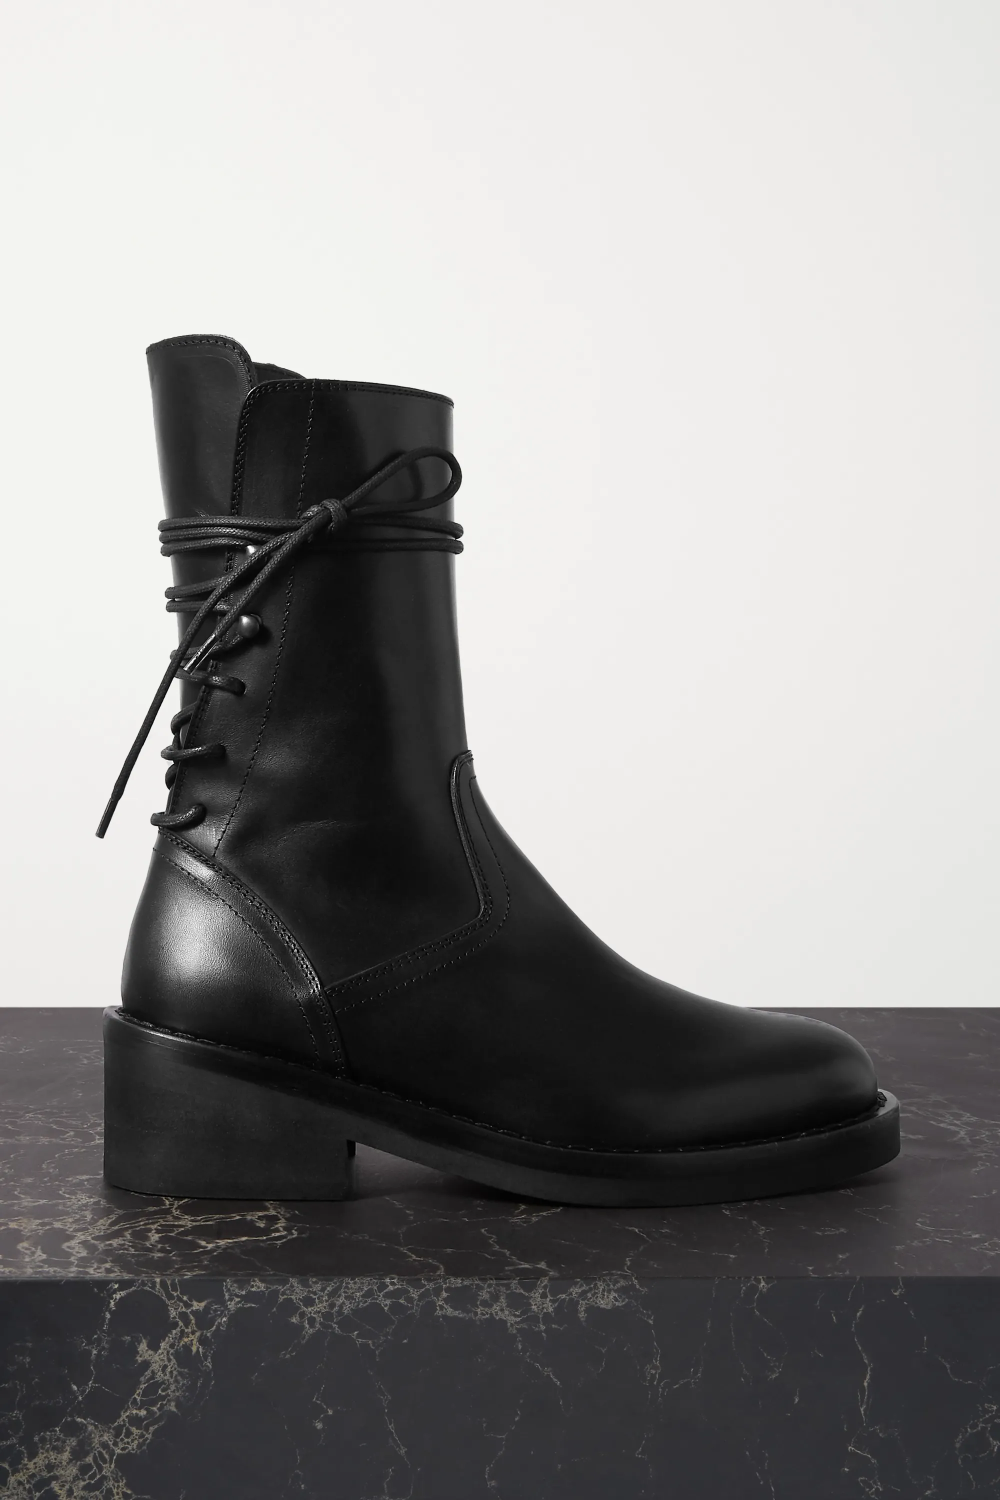 Black Lace Up Leather Ankle Boots Ann Demeulemeester In 2020 Leather Ankle Boots Boots Shoes Boots Ankle